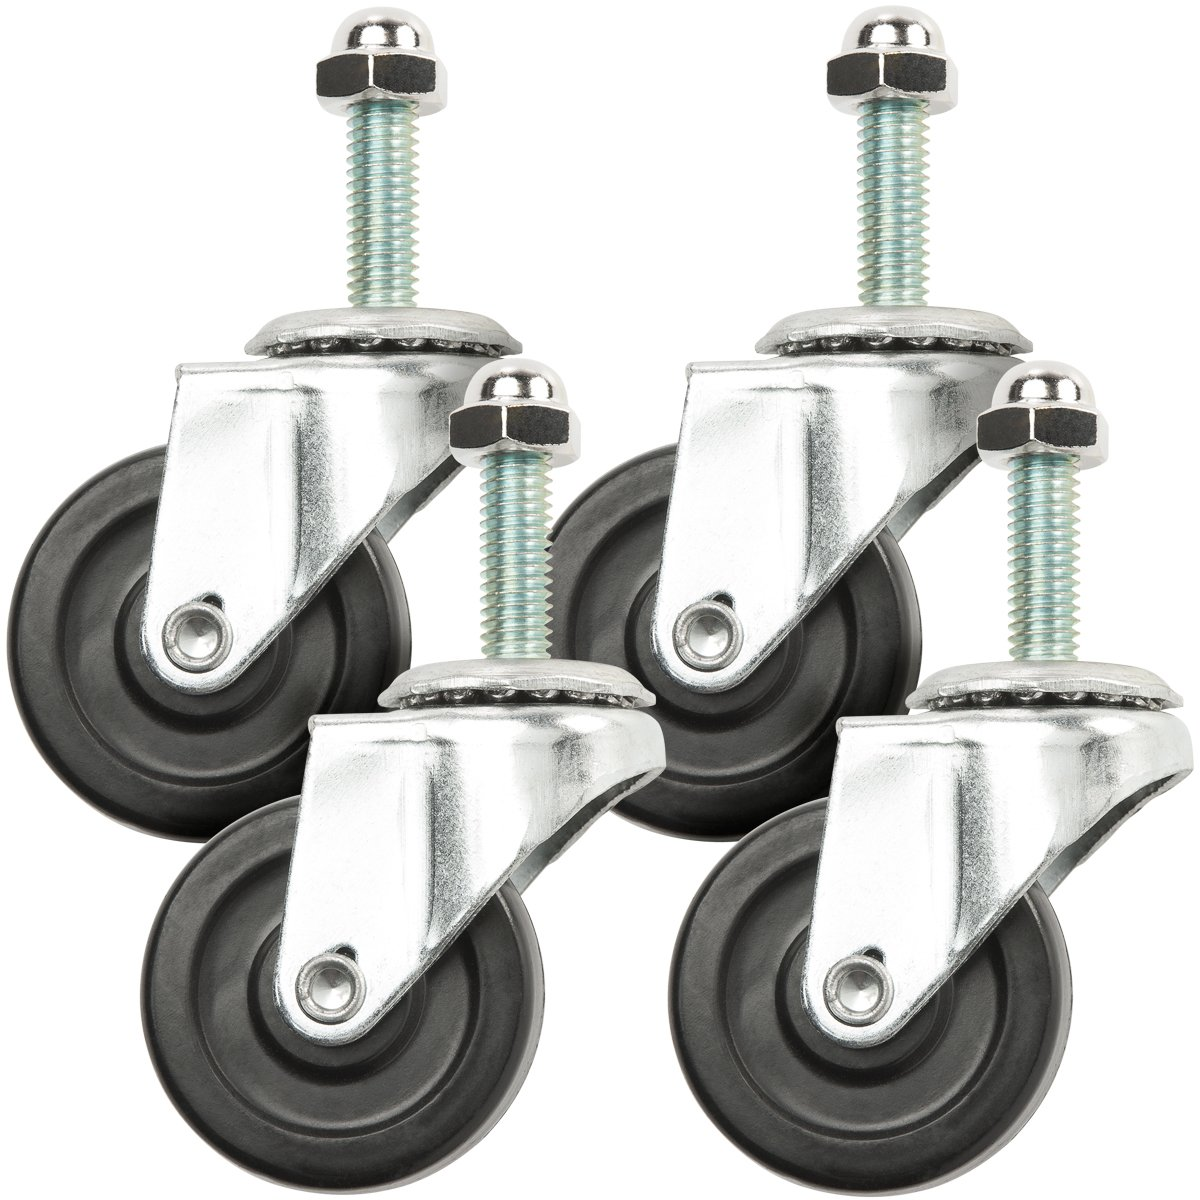 Steiner 54604HD Swivel Caster Wheel for Protect-O-Screen HD (4 Pack)